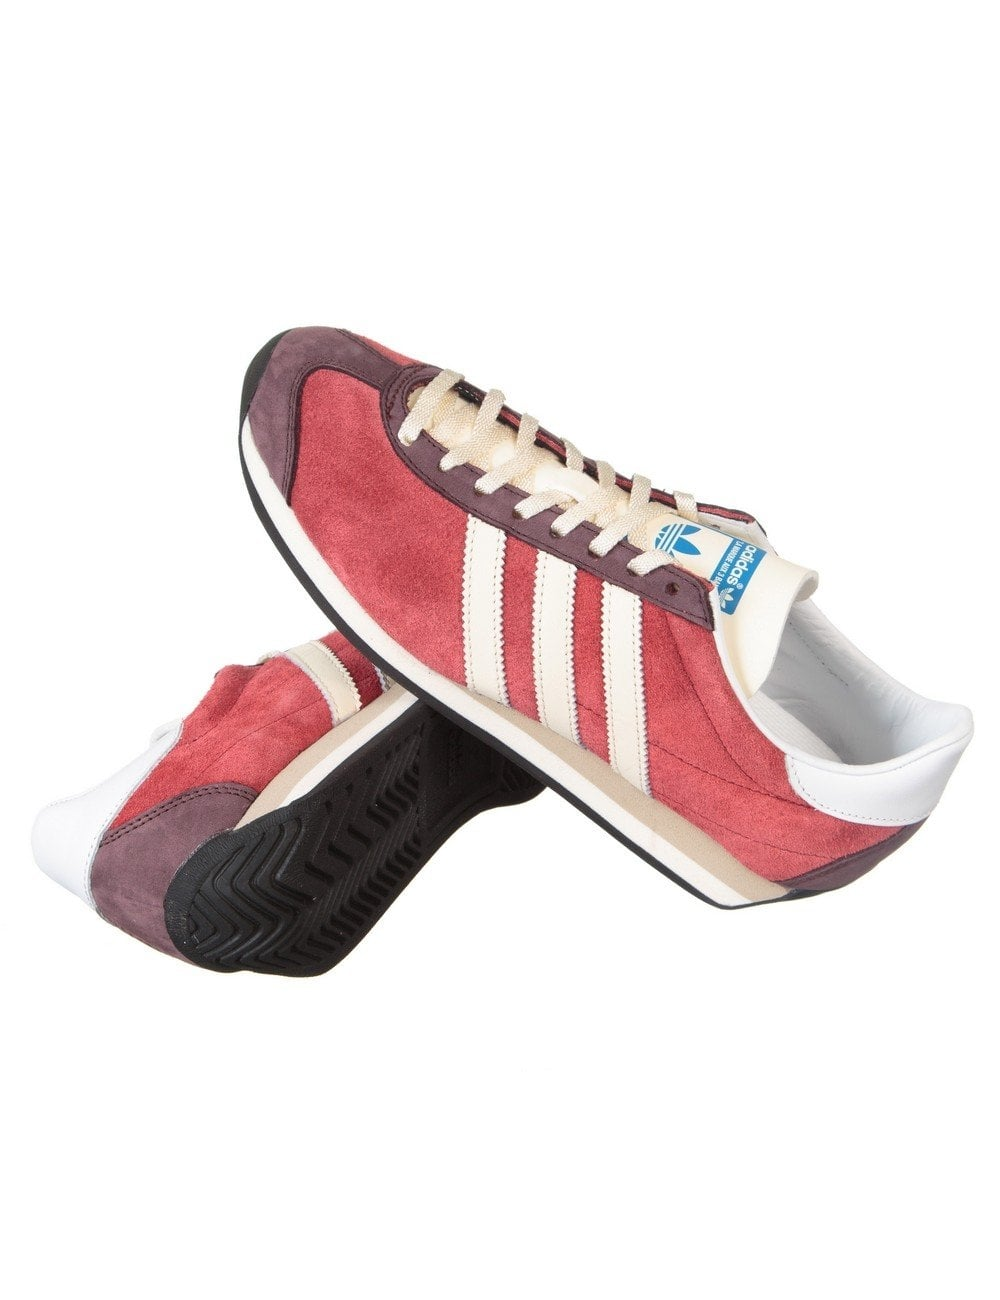 83ae5e78f6c Adidas Originals Country OG Shoes - Rust Red - Footwear from Fat ...